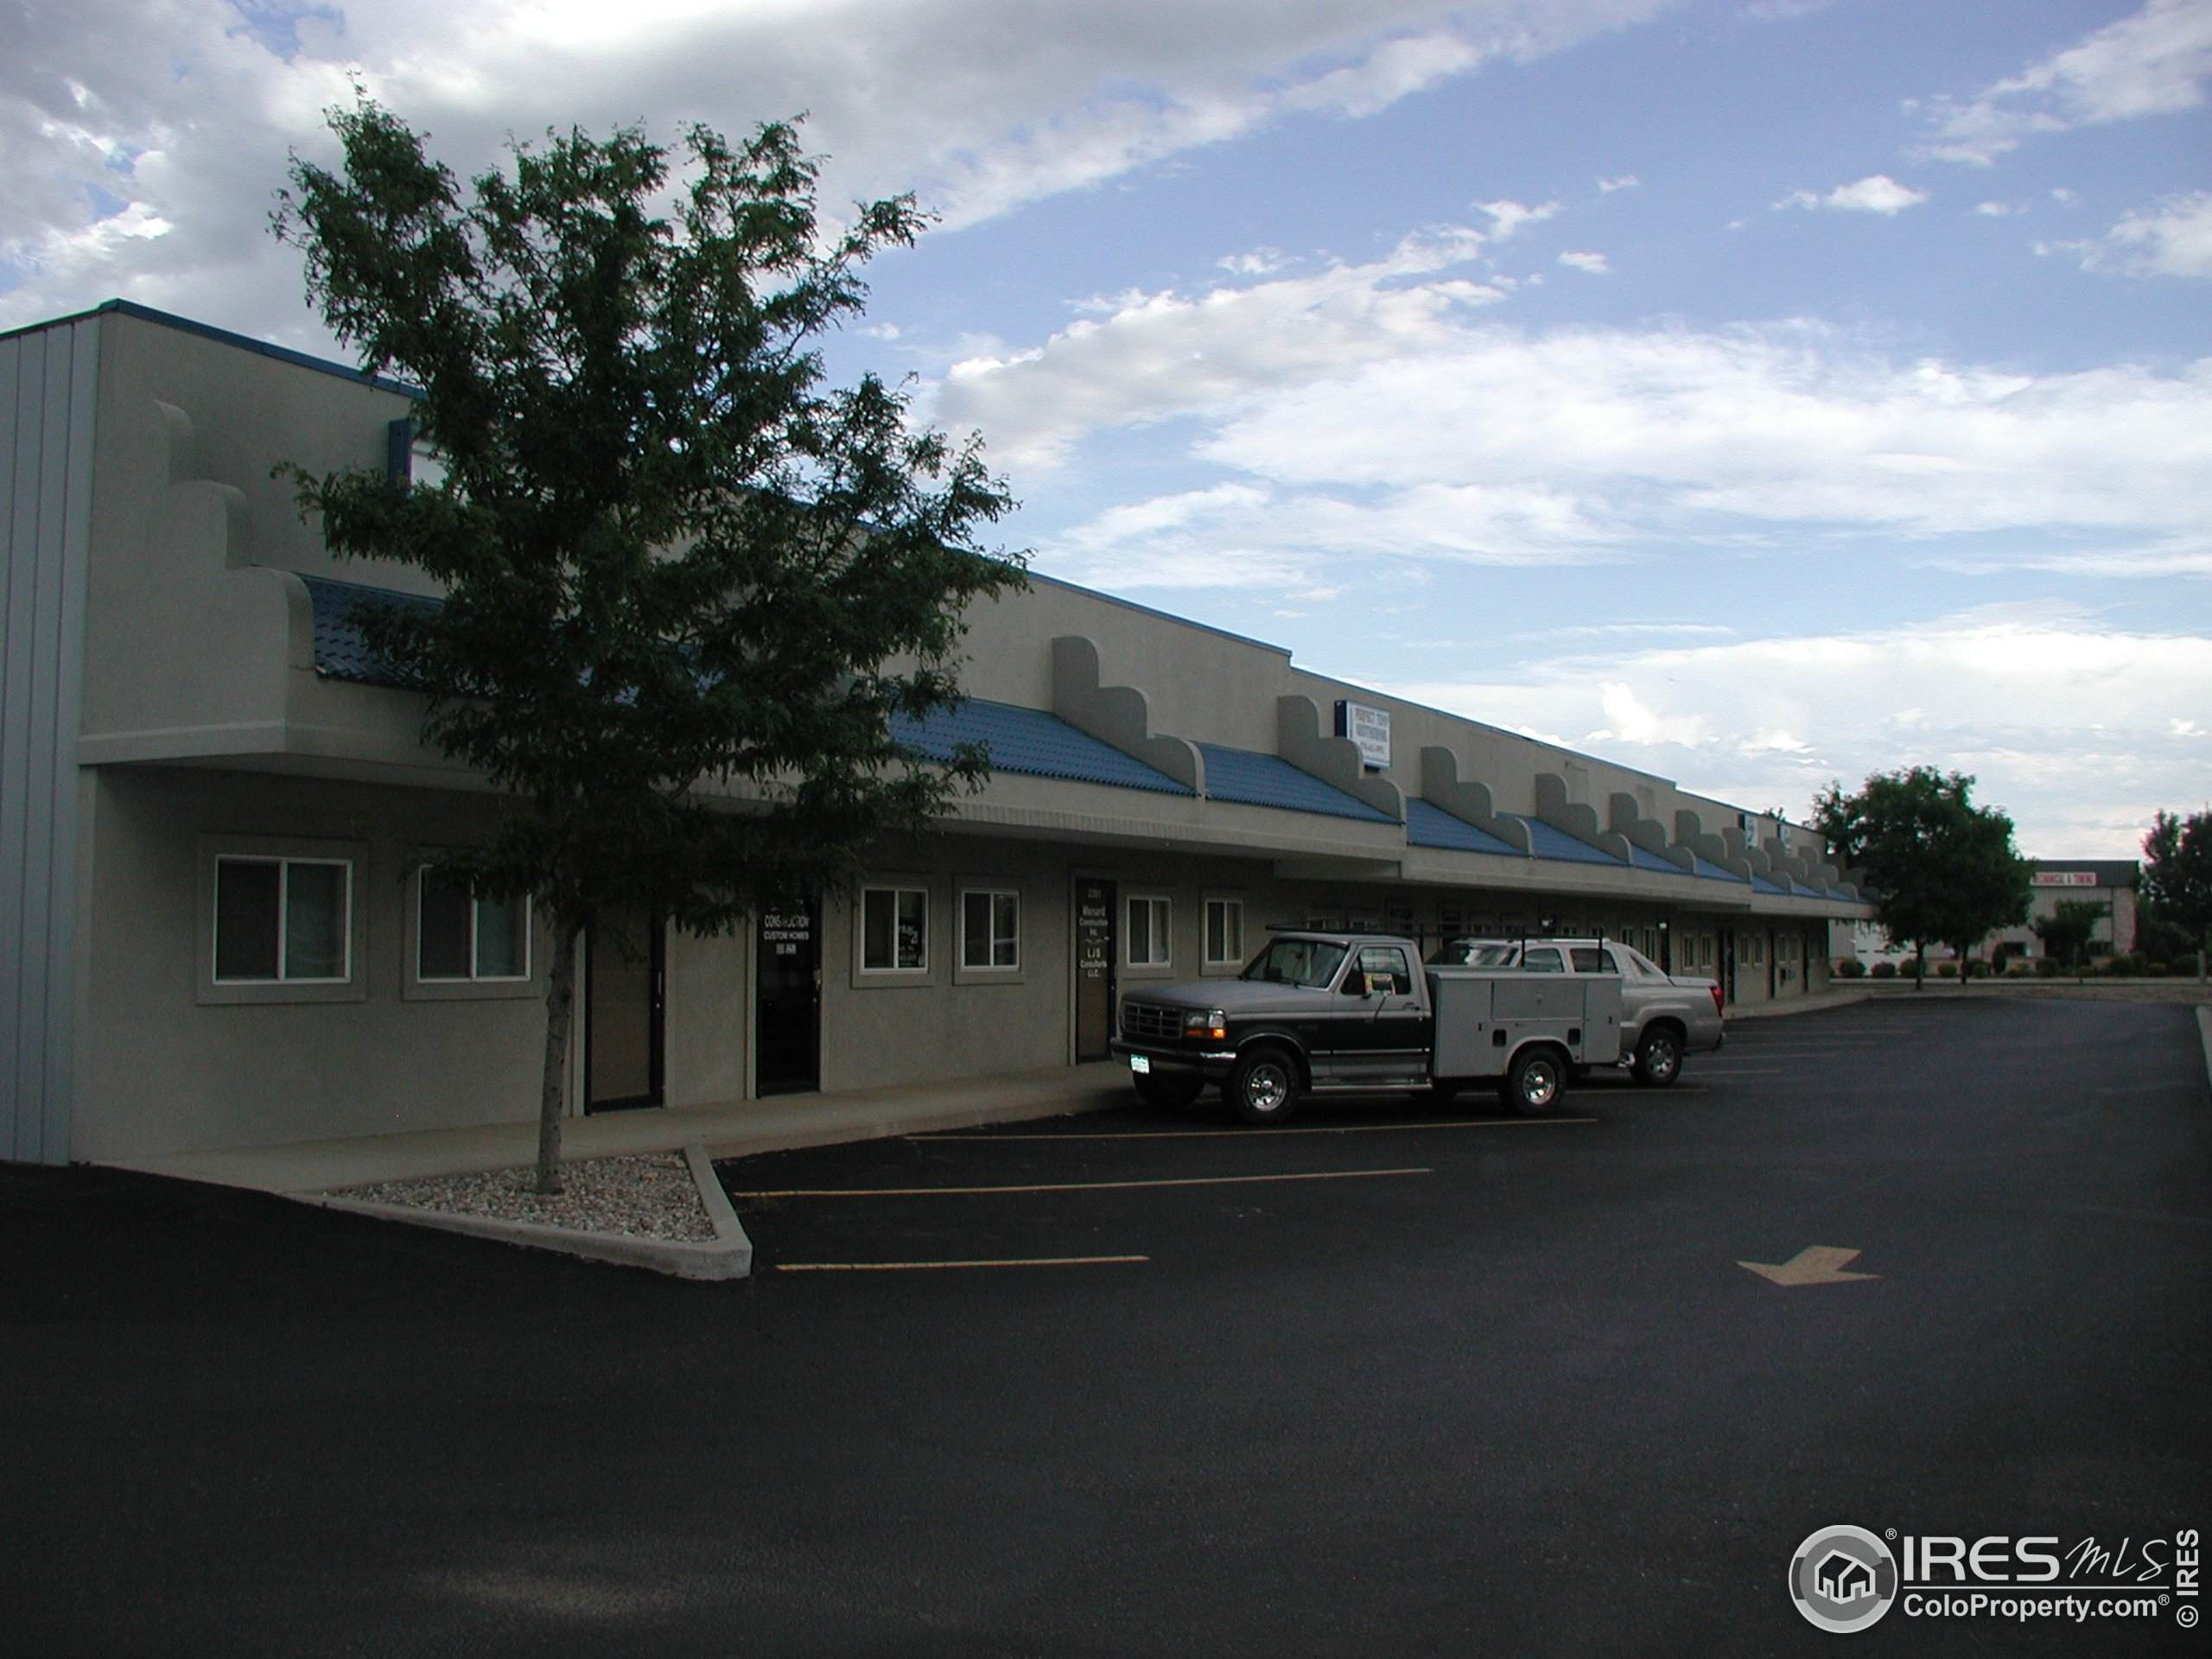 7502 21st St, Greeley, CO 80634 (MLS #903540) :: 8z Real Estate